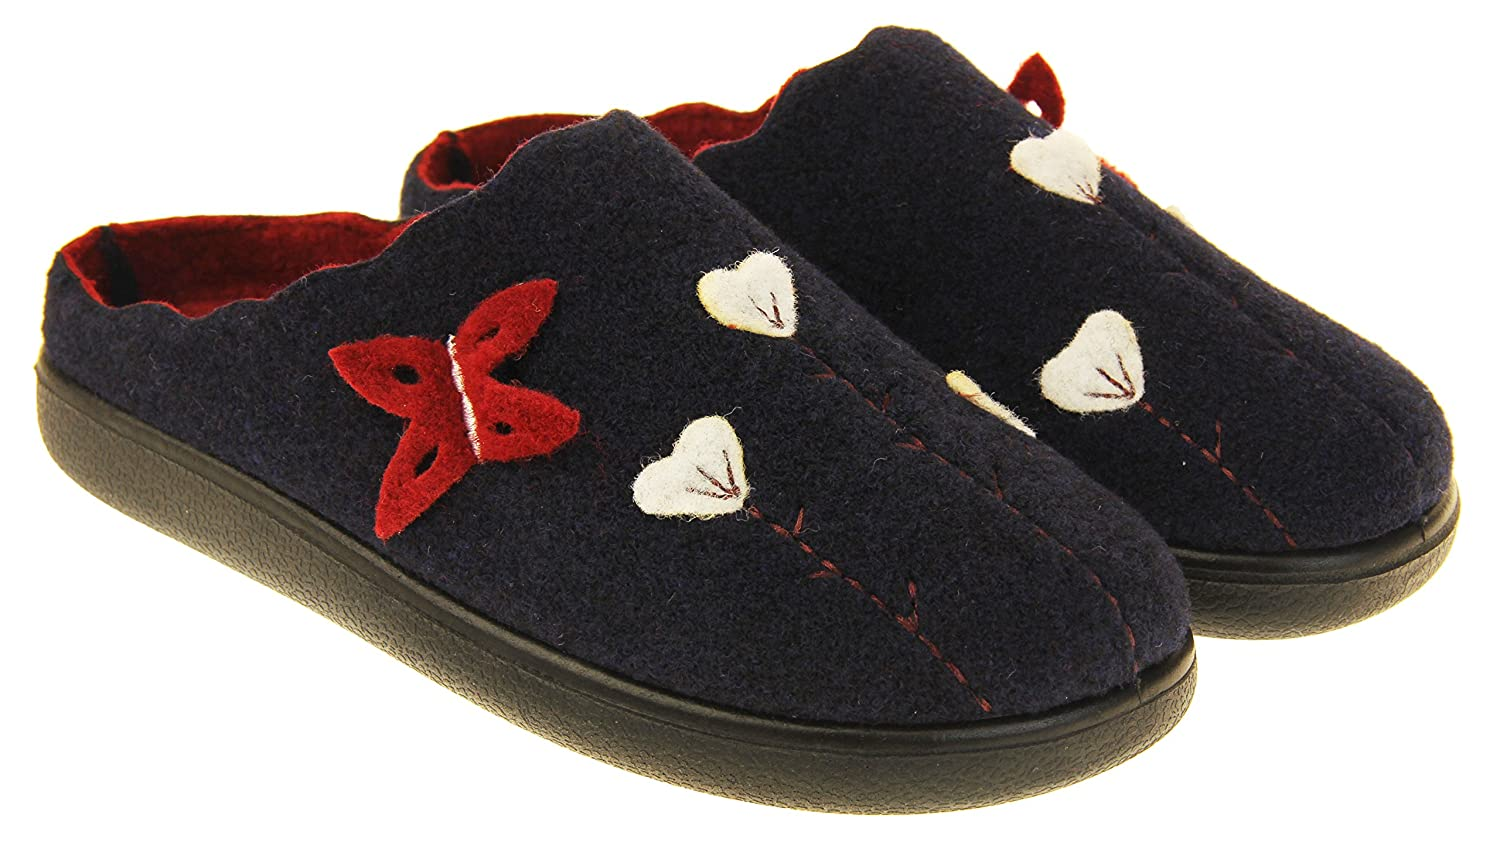 Coolers Womens Navy /& Burgundy Butterfly Felt Mules Slippers 10 B US M